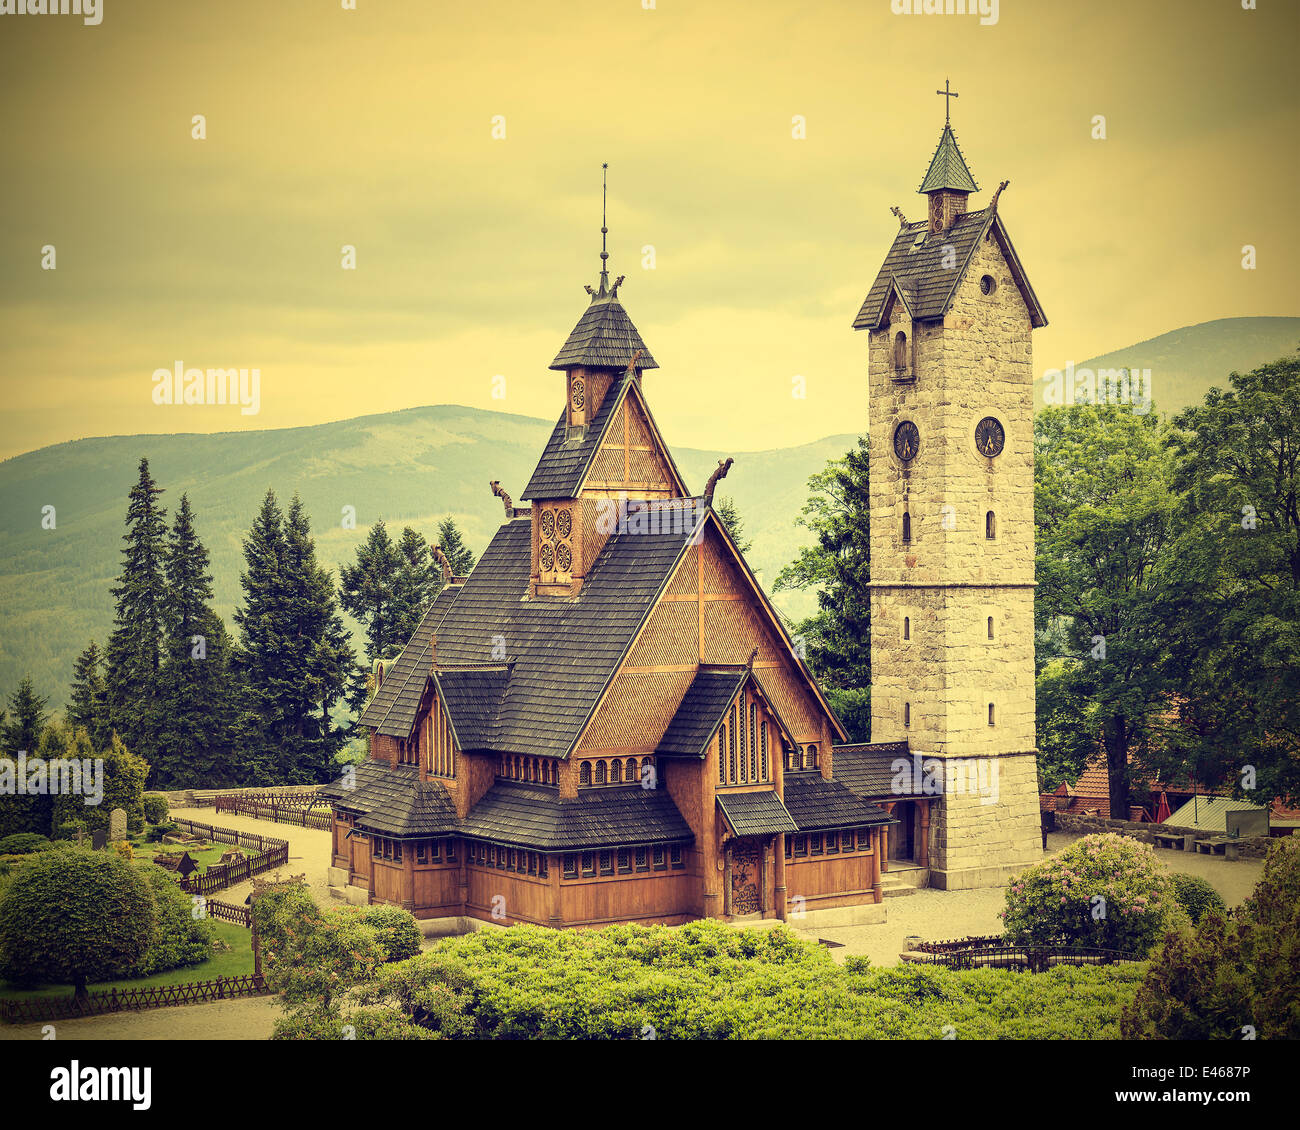 Old, wooden, temple Wang in Karpacz, Poland, vintage style. - Stock Image